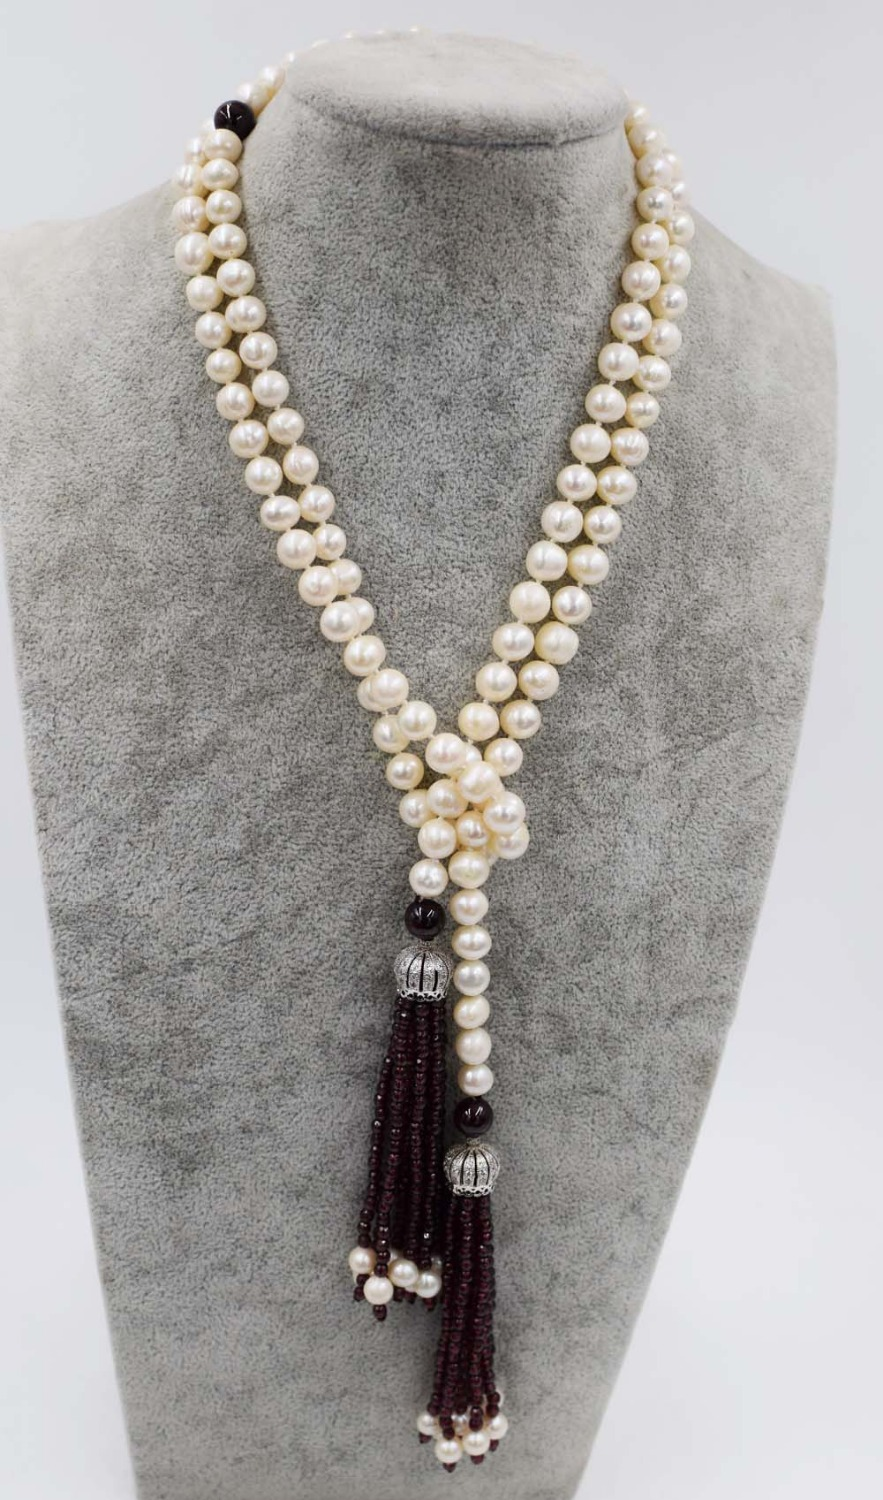 все цены на freshwater pearl white near round and red garnet 3mm hook pendant necklace 55inch FPPJ wholesale beads nature онлайн